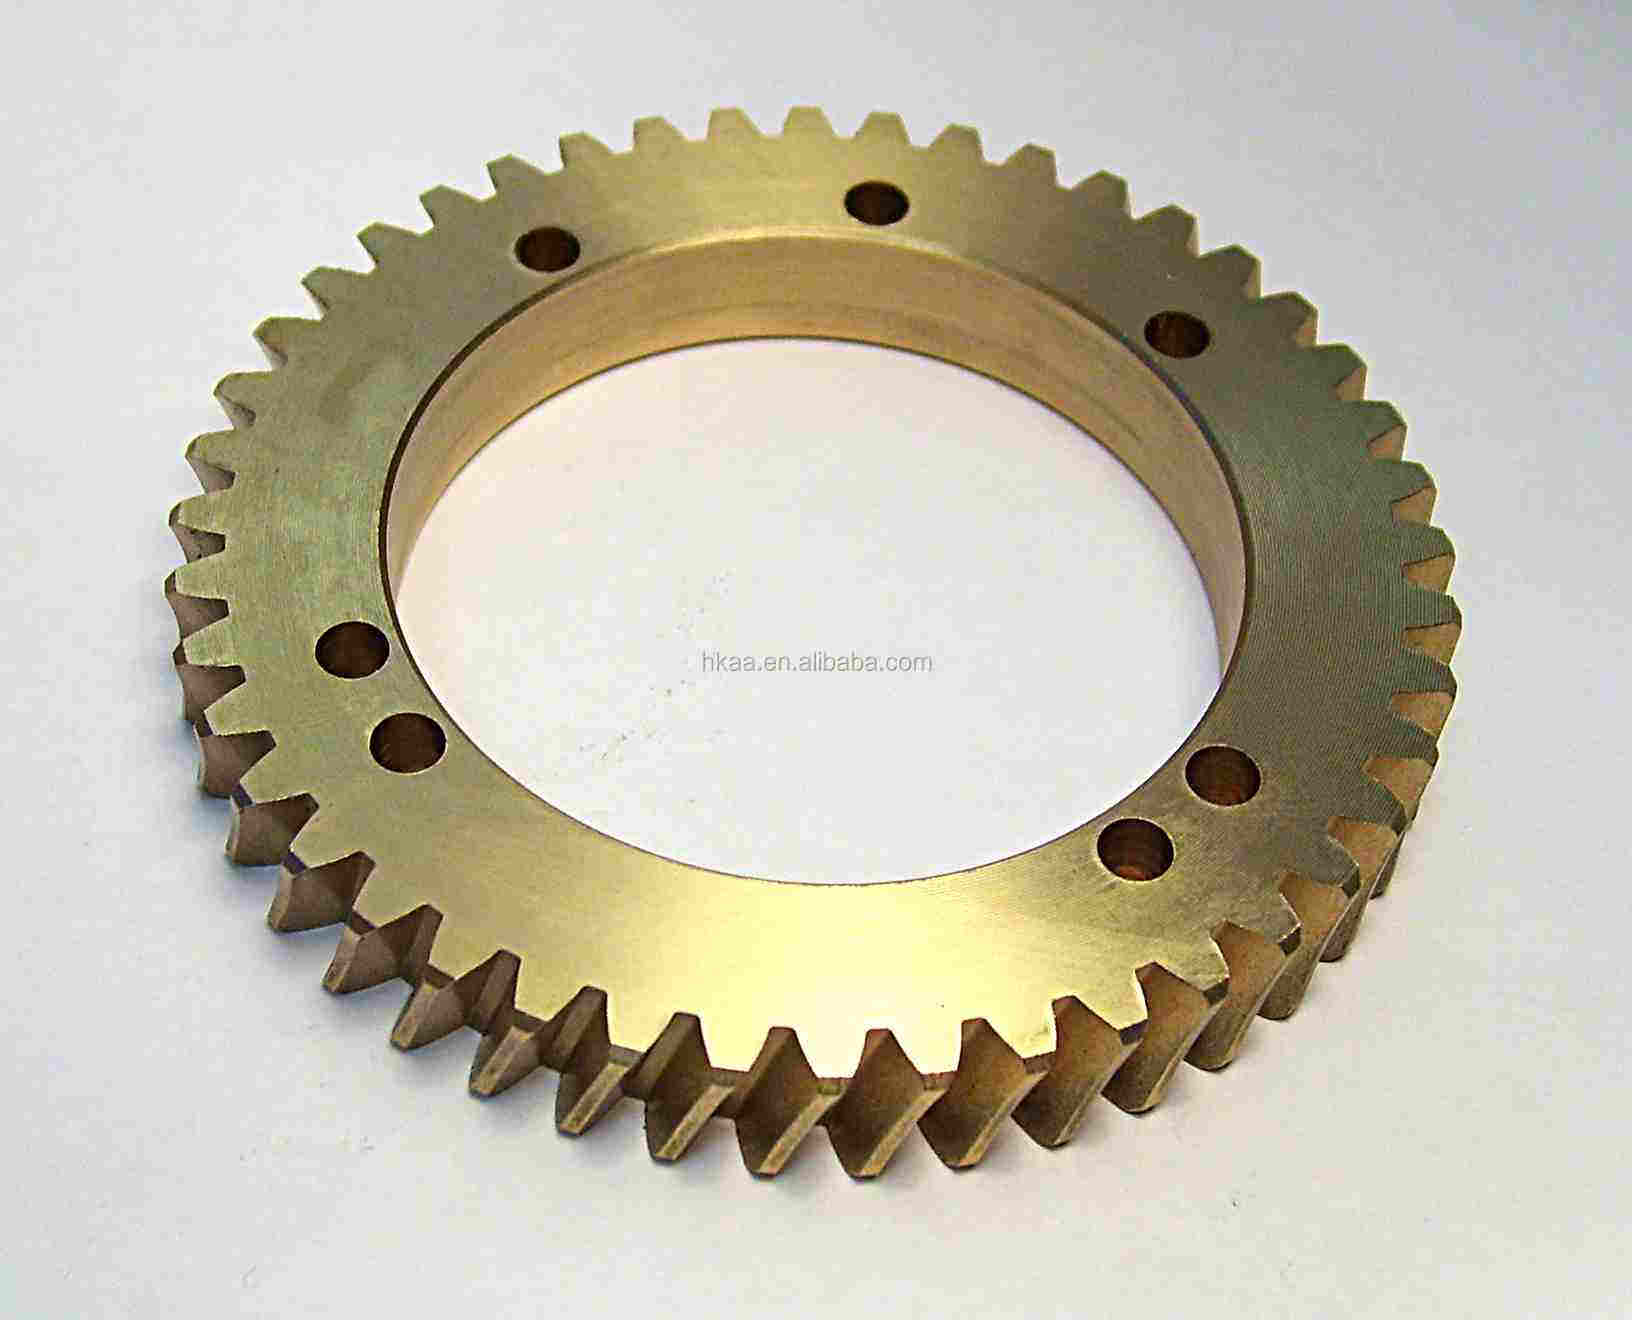 CNC machined bronze toothed gear wheel,bronze ring gear wheel